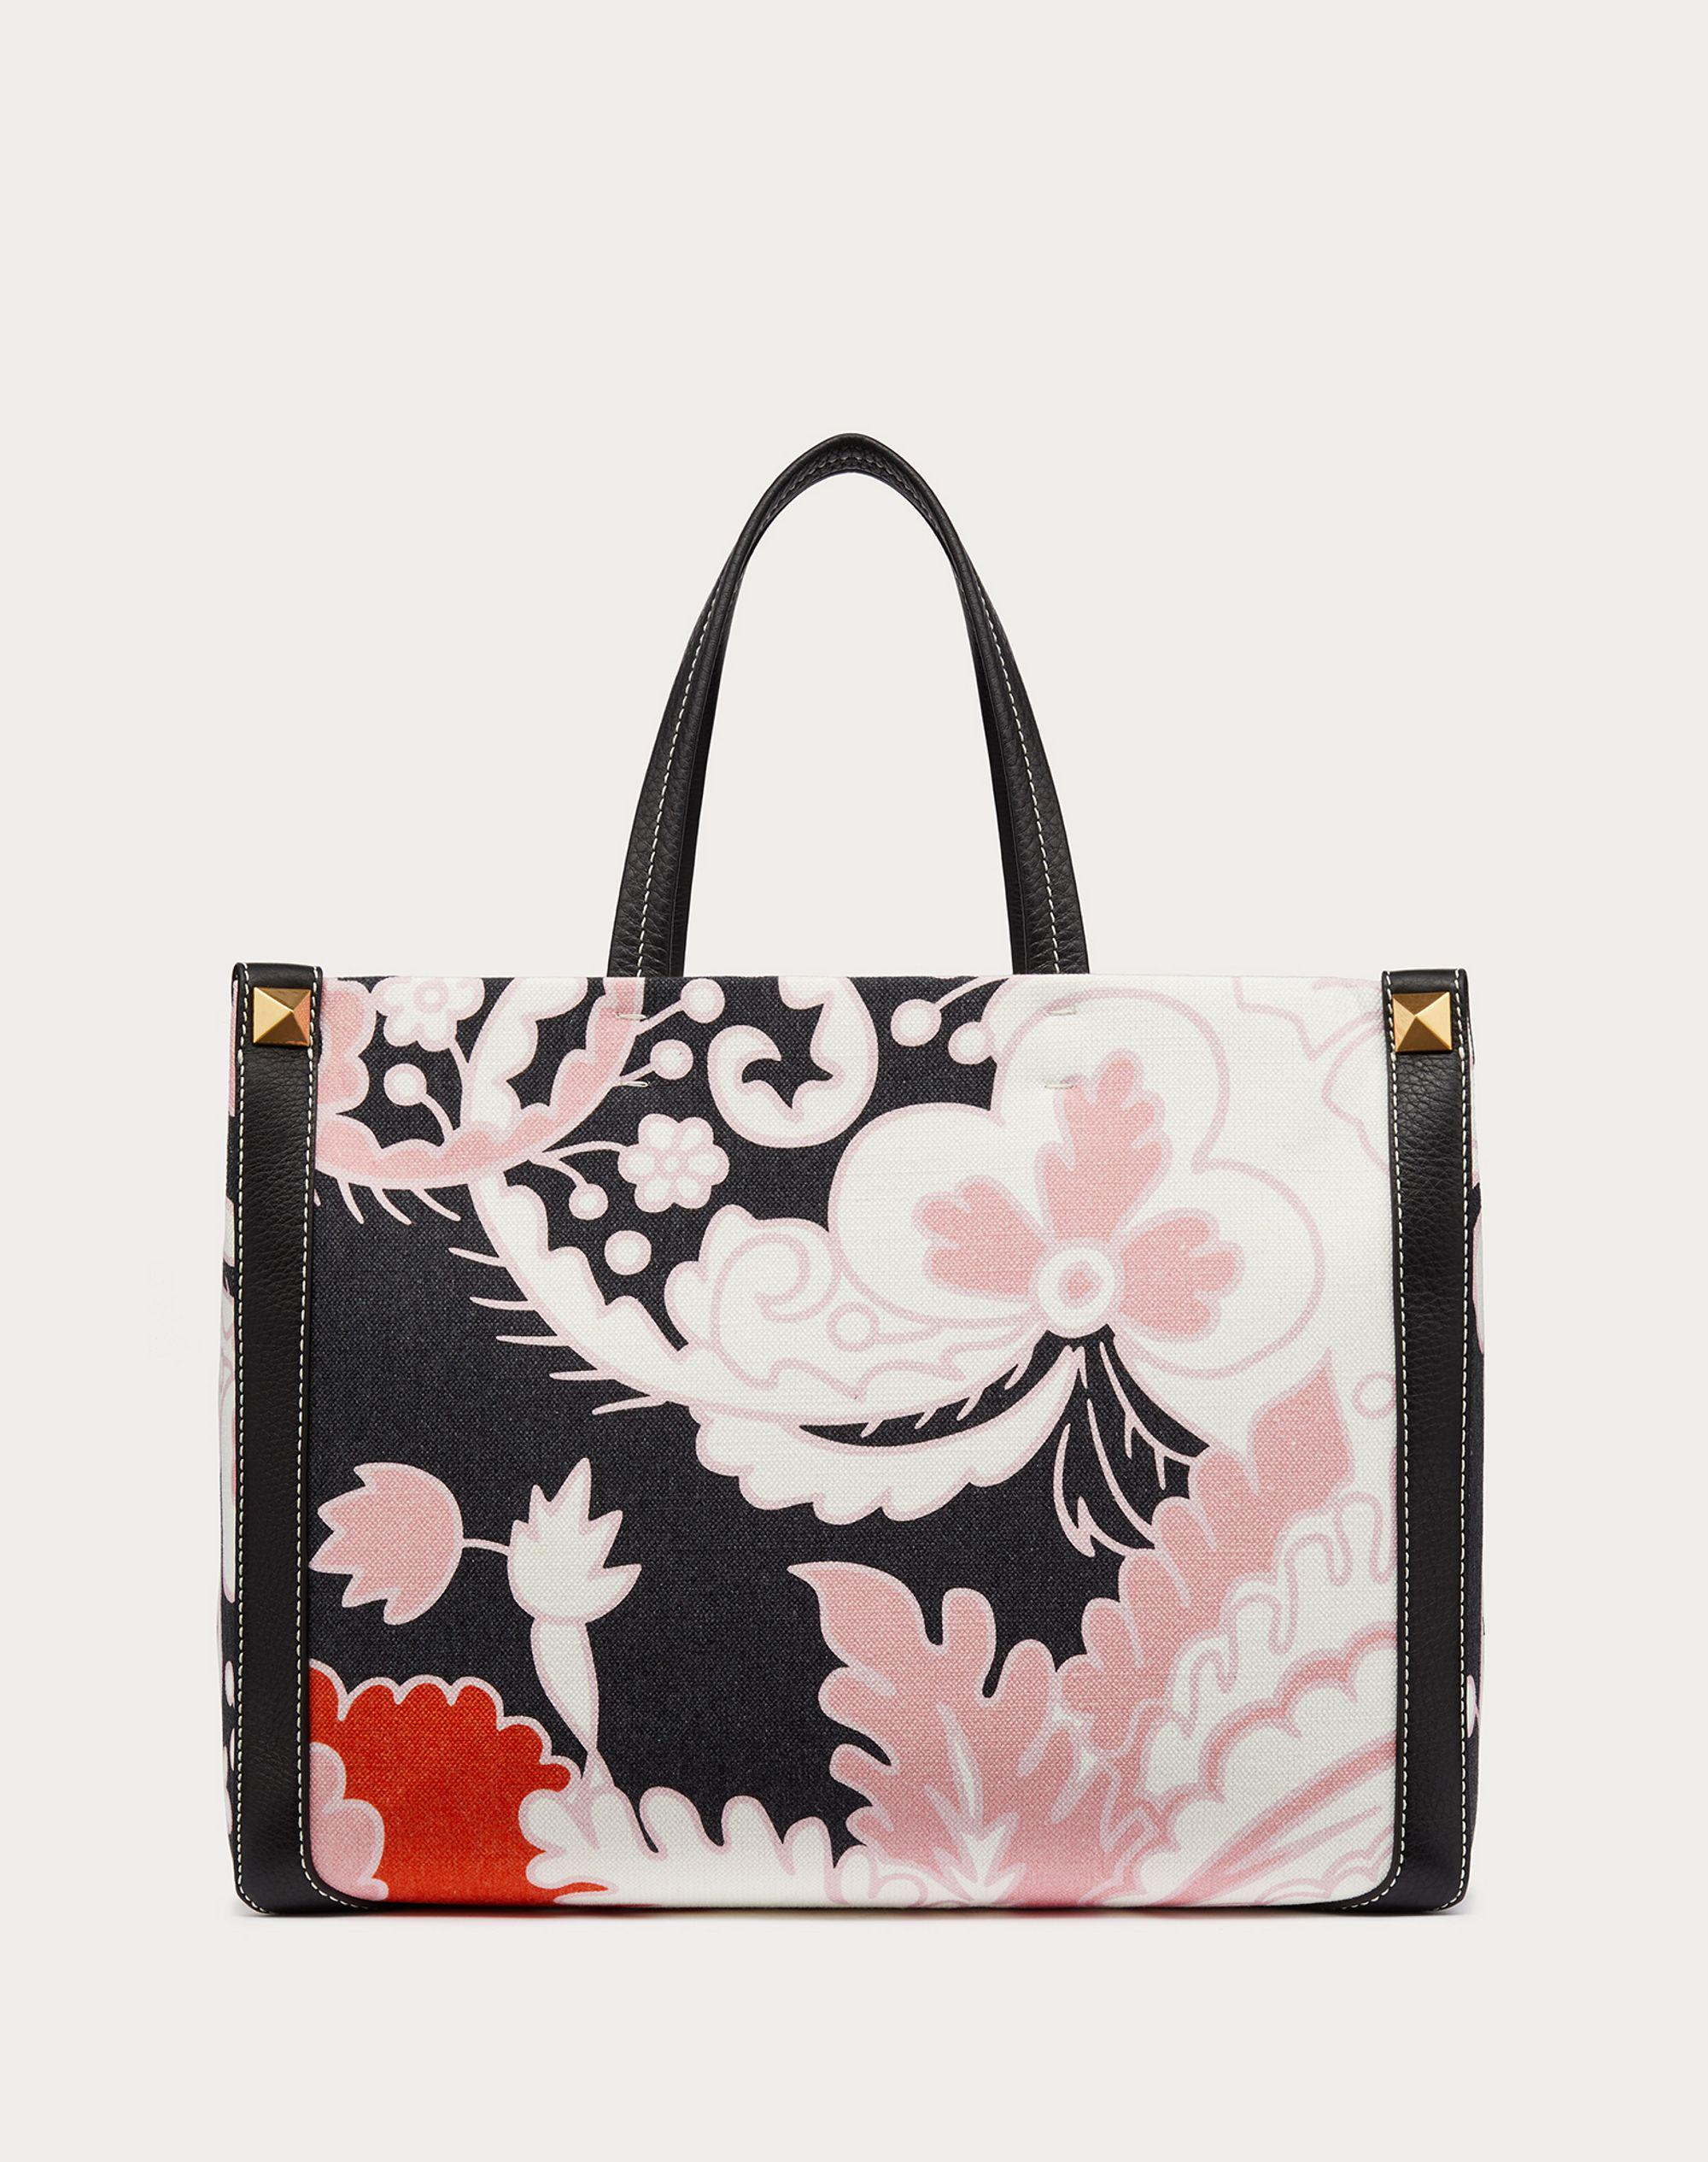 Small Canvas Tote Bag with Print